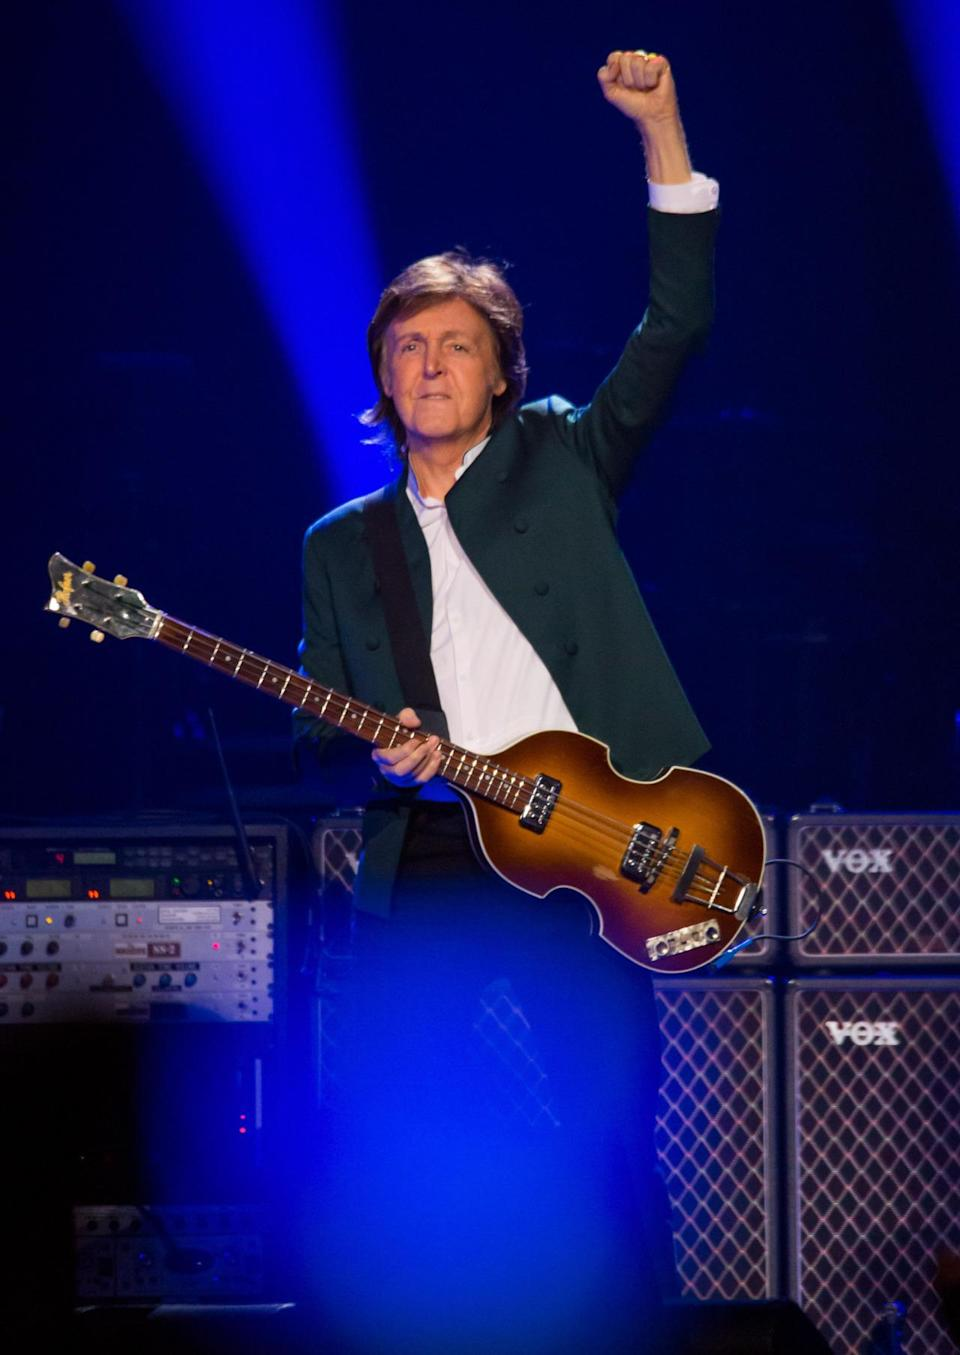 """Paul McCartney may win a Grammy in the Rap Field. In fact, he may win two. He's nominated for Best Rap Performance for appearing as a featured artist on Kanye West's """"All Day,"""" and Best Rap Song for co-writing that song. Odds of this happening: Not good. Kendrick Lamar's """"Alright"""" is the frontrunner in both categories."""